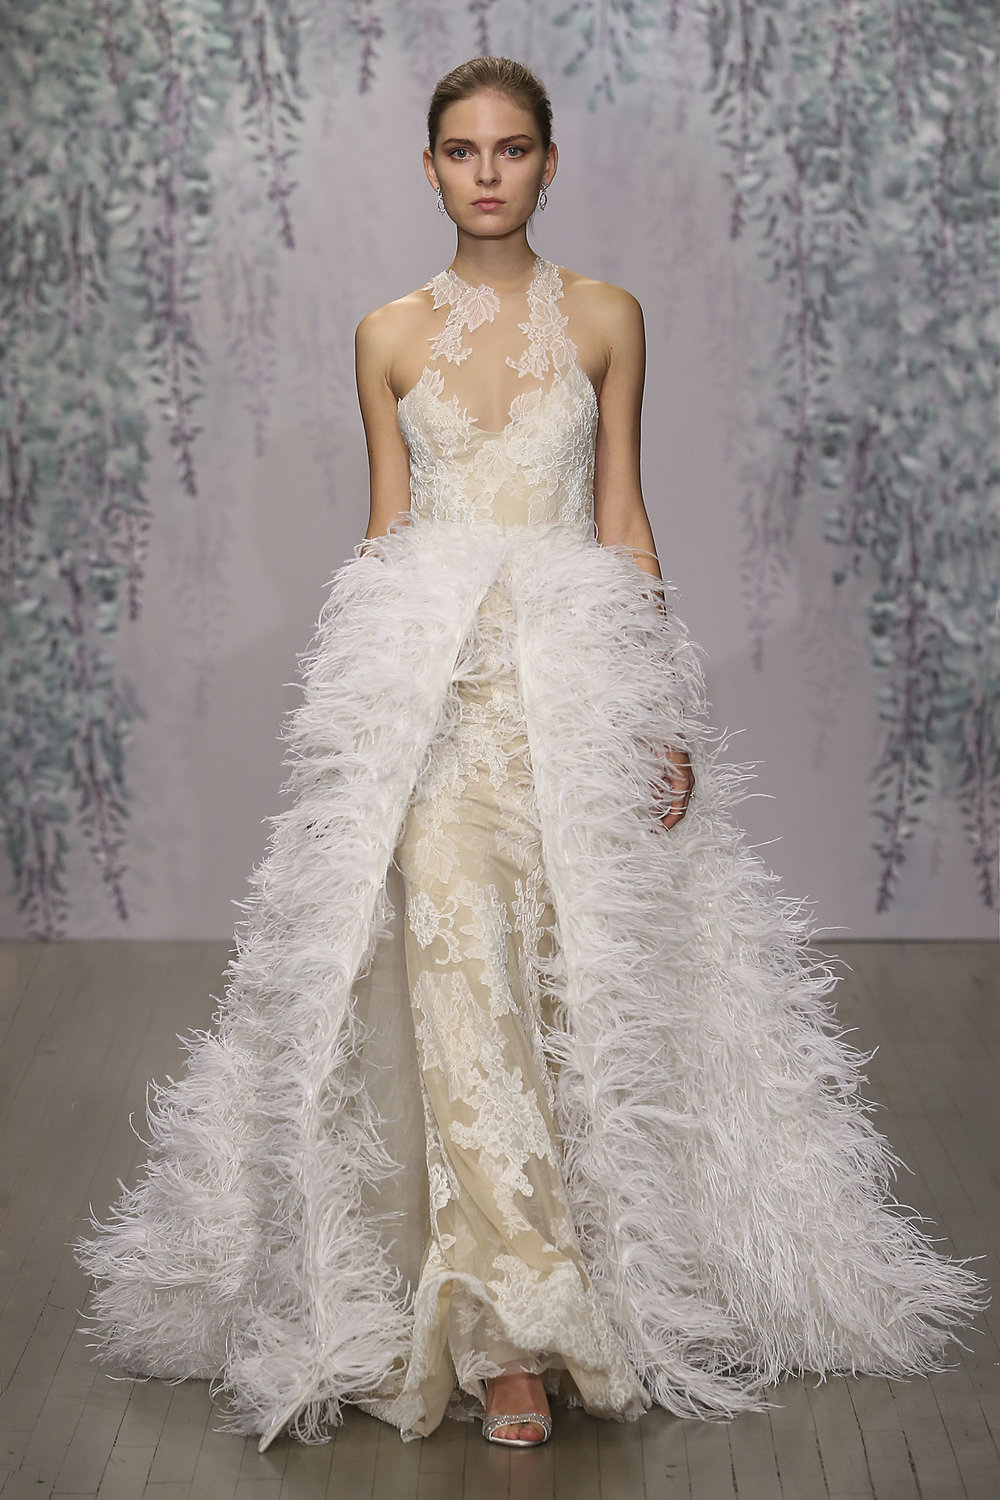 Season: Fall 2016     Gown name: Azelea    Description: A silk white and nude Chantilly and re-embroidered lace racer illusion neckline sheath with crisscross back